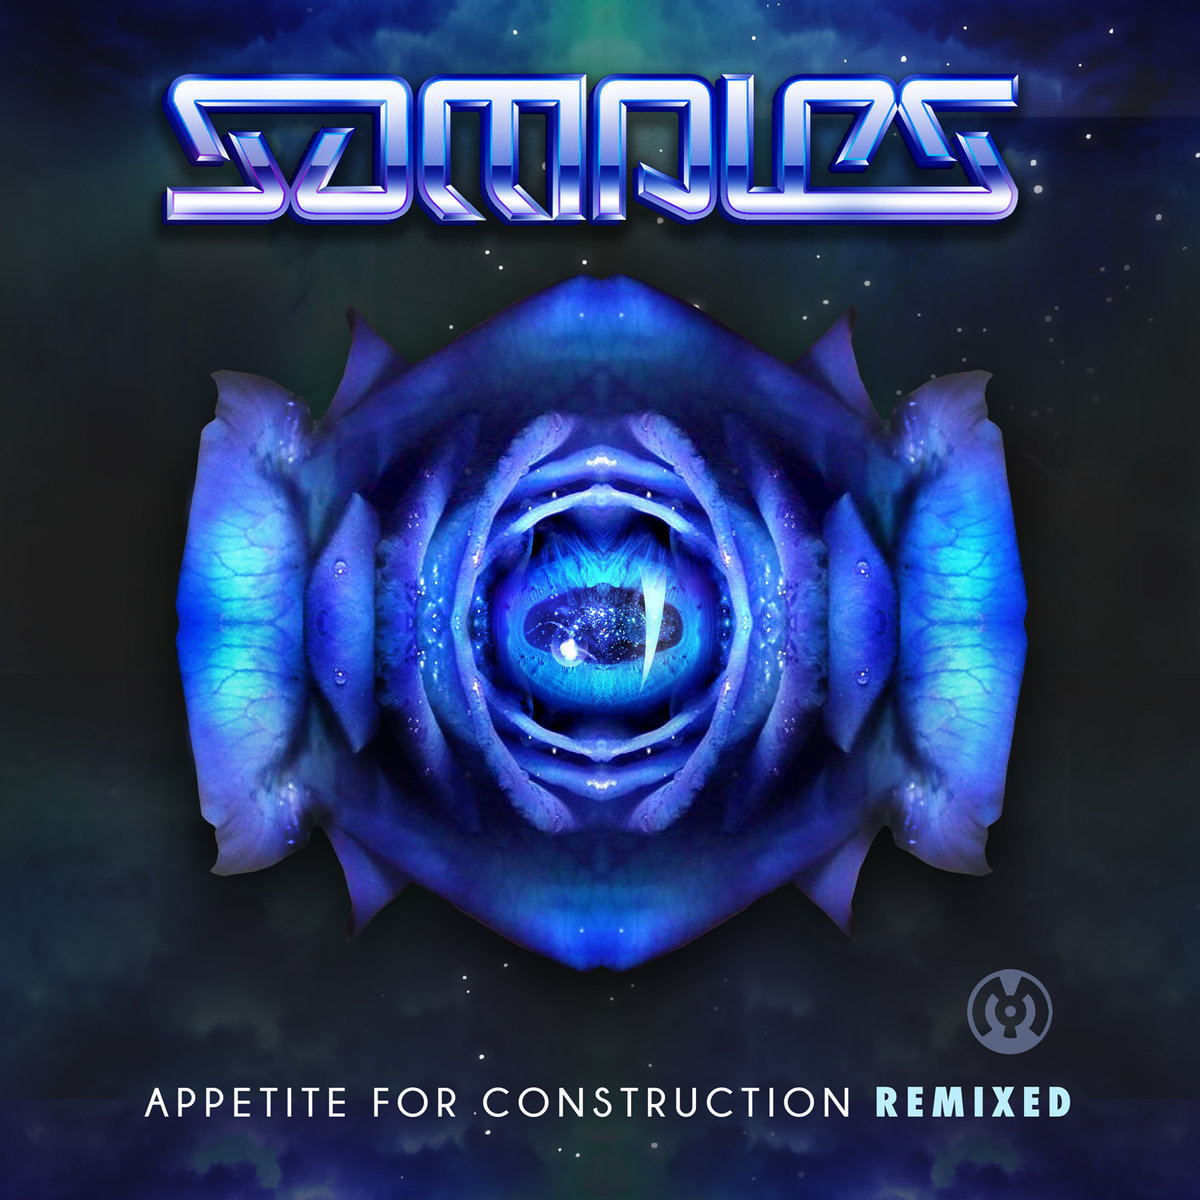 Samples - Down To Business (Sir Charles Remix) @ 'Appetite For Construction Remixed' album (electronic, dubstep)